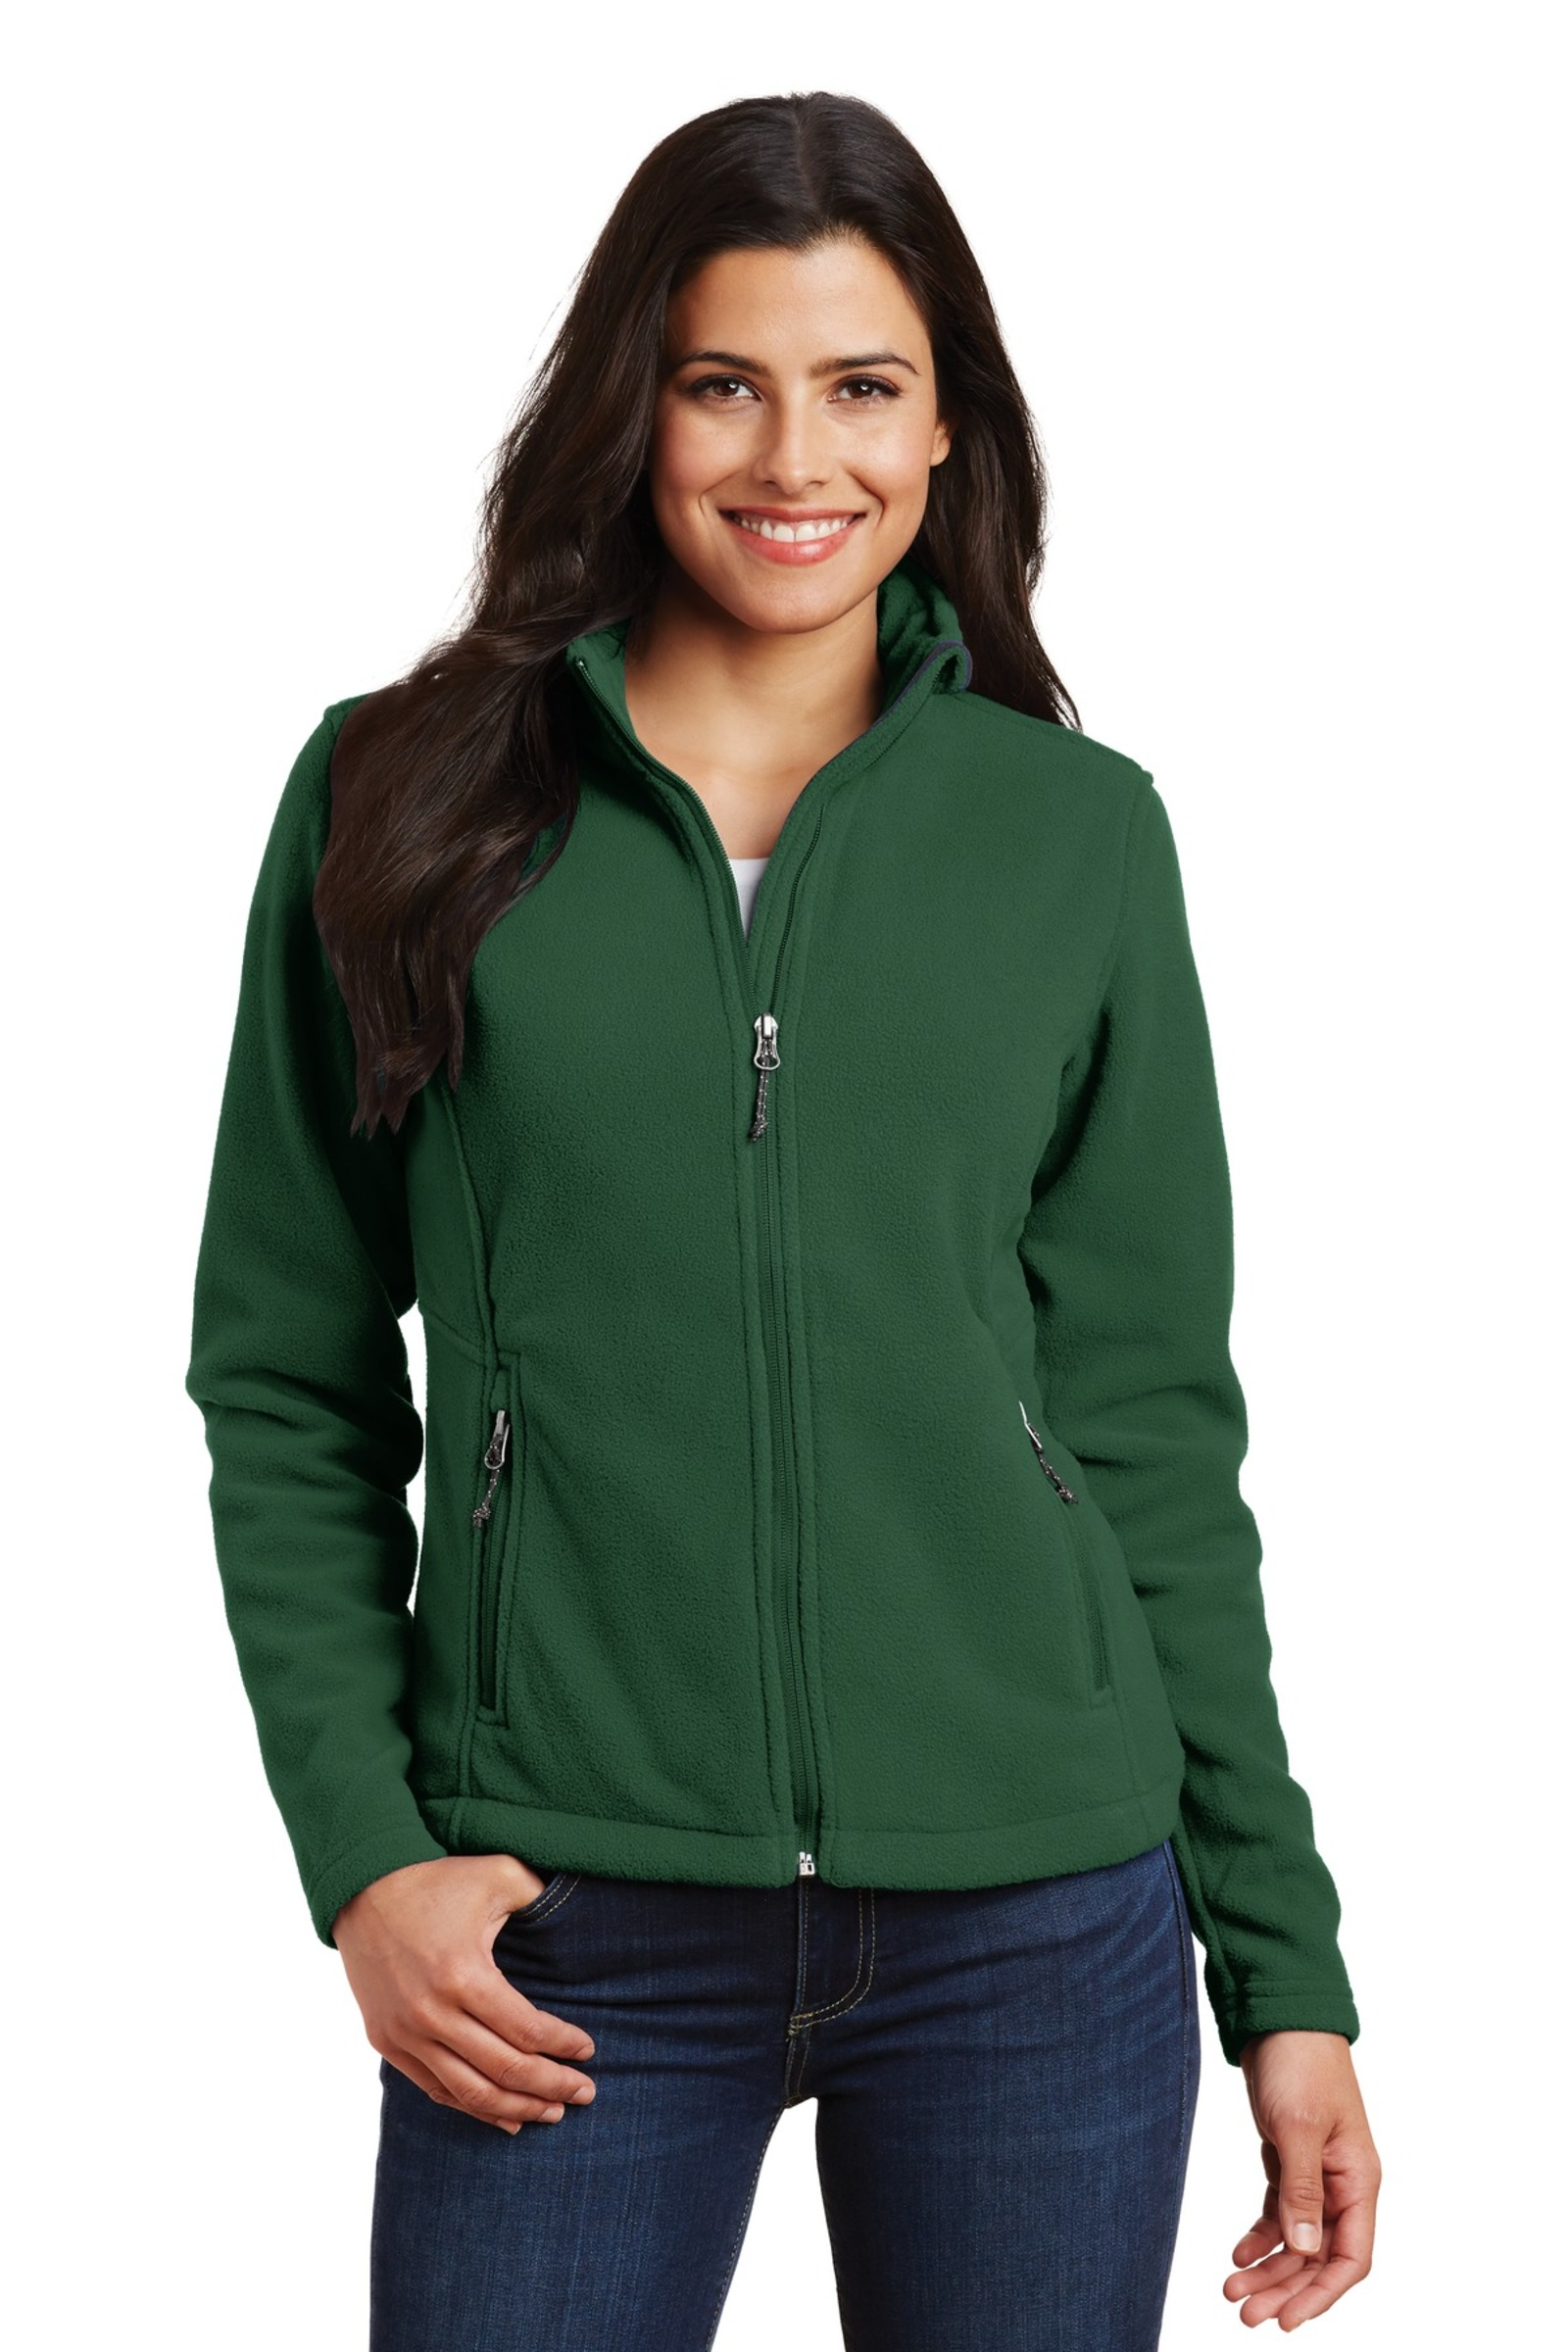 Port Authority Embroidered Women's Value Fleece Jacket